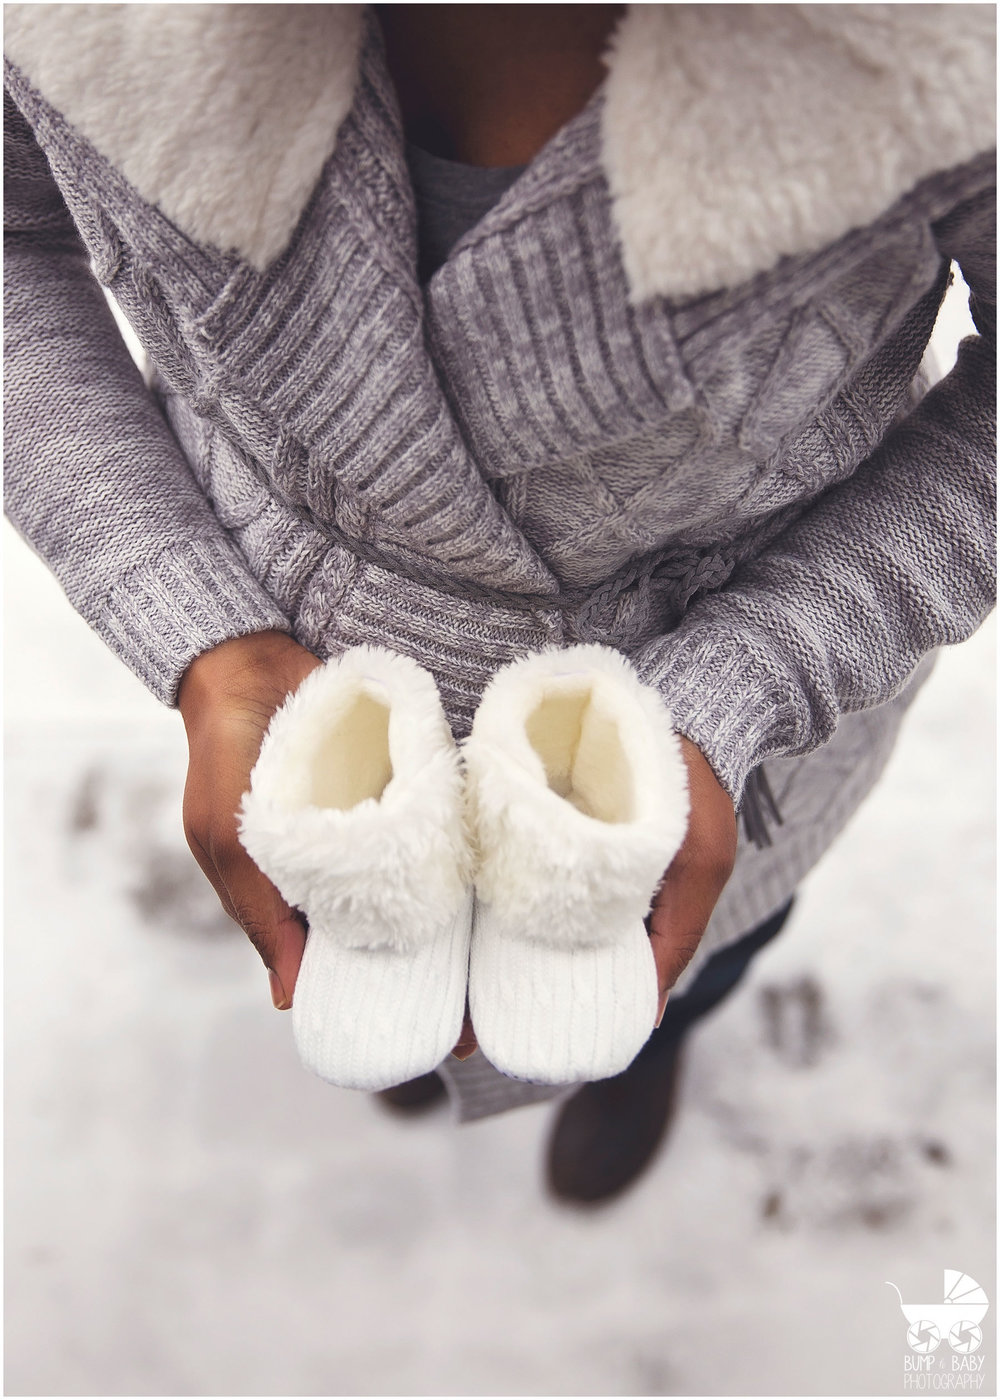 Maternity-Session-Outdoor-in-winter-with-baby-boots.jpg